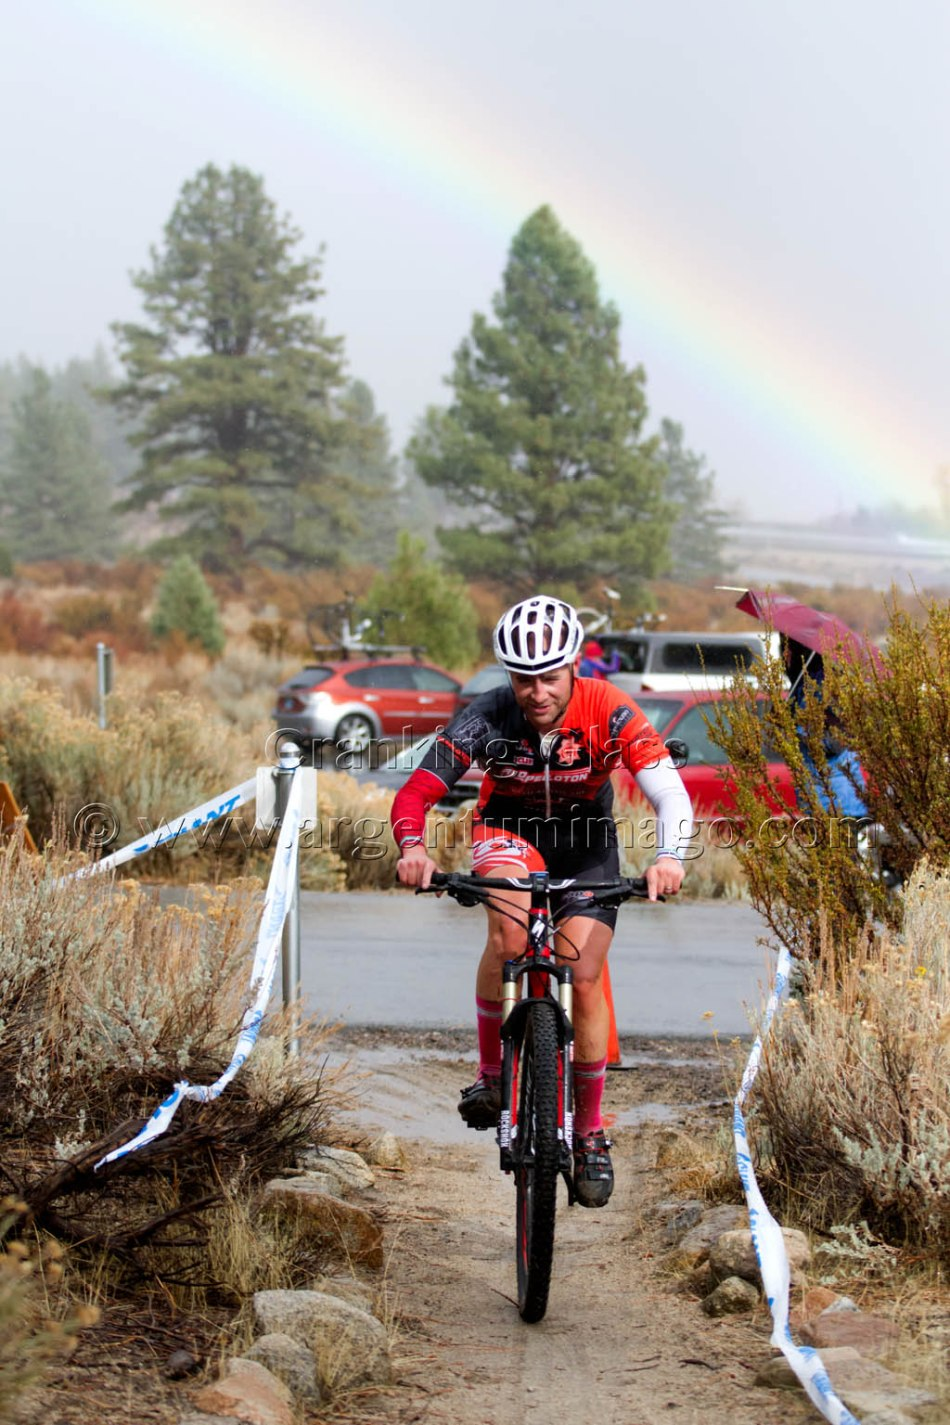 The Sagebrush Cyclocross Series Rainbow